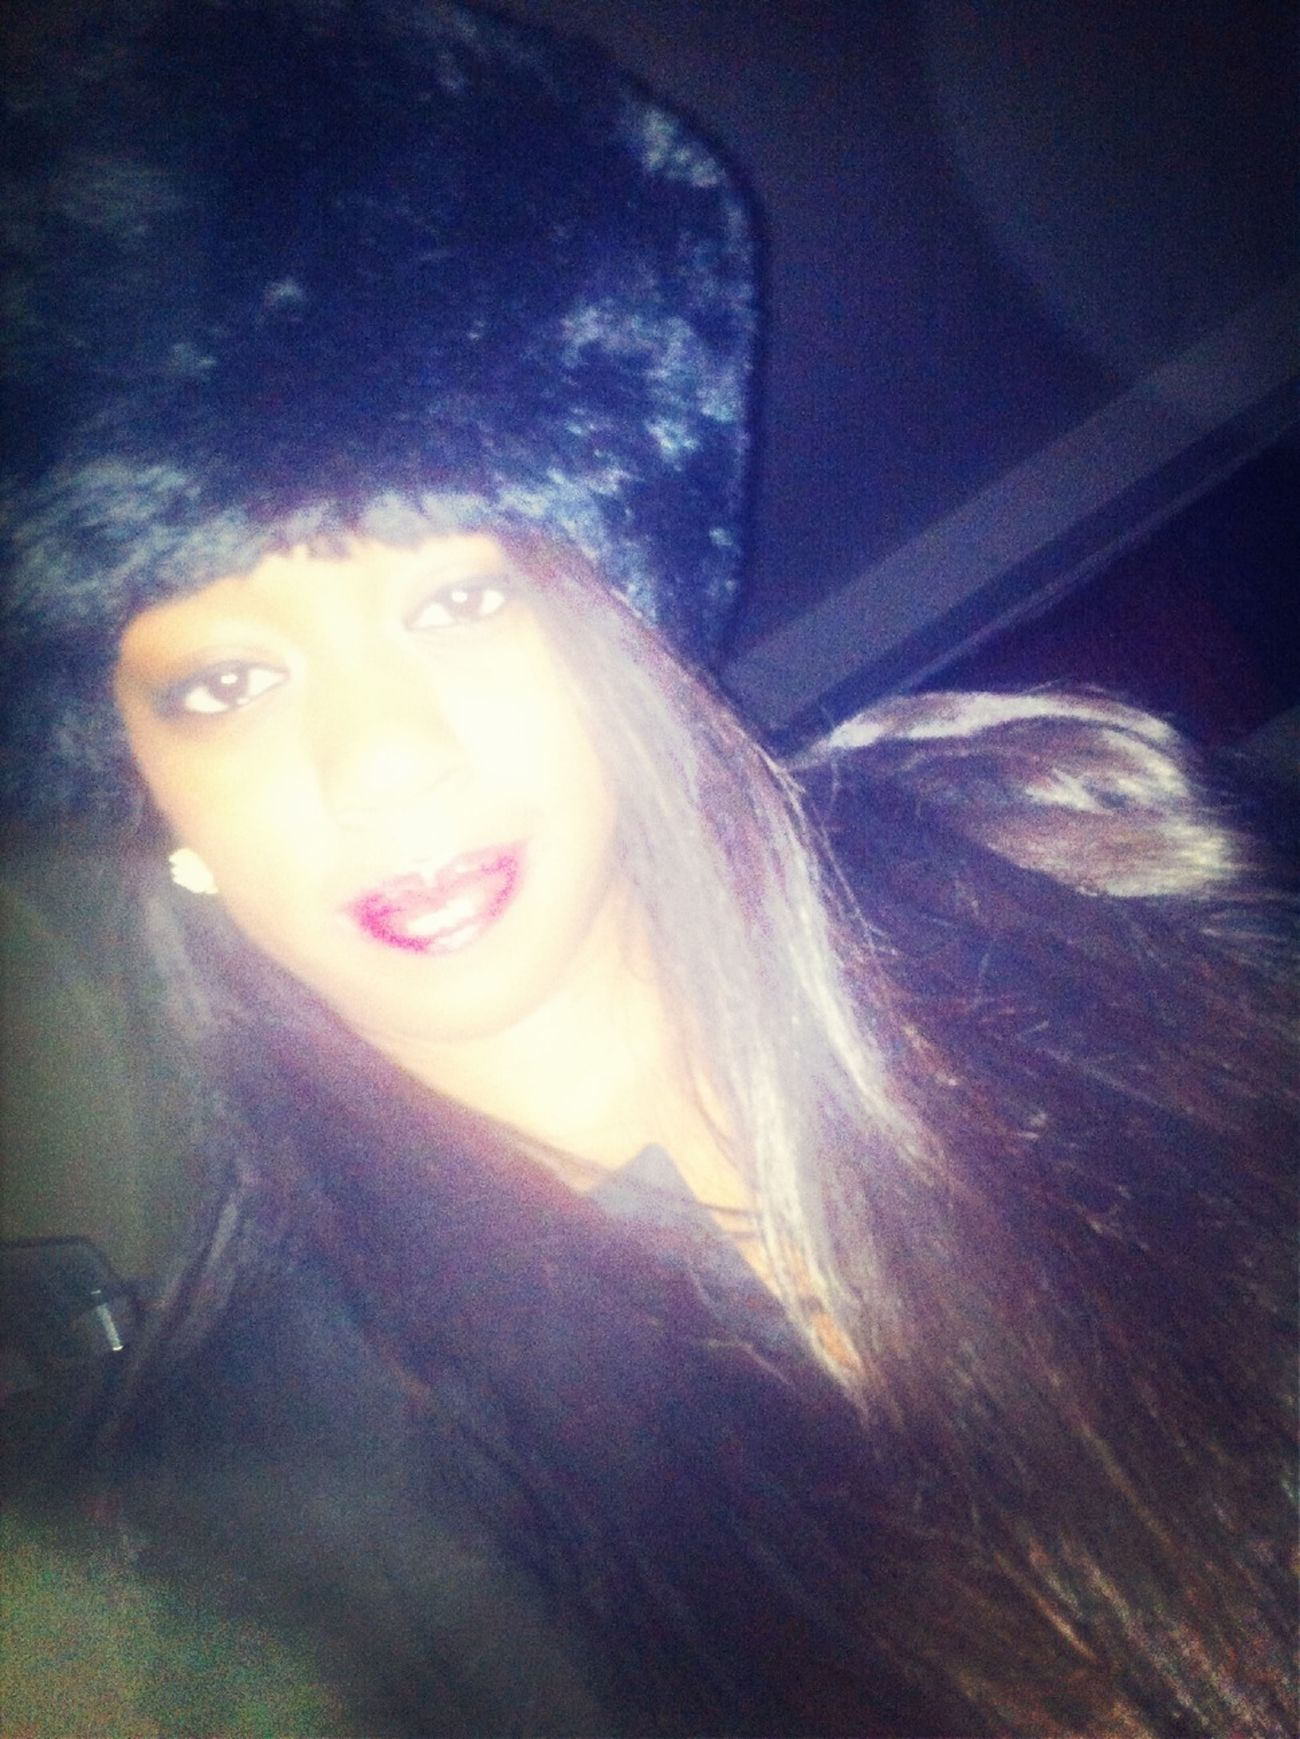 Mink Hats & Long Hair